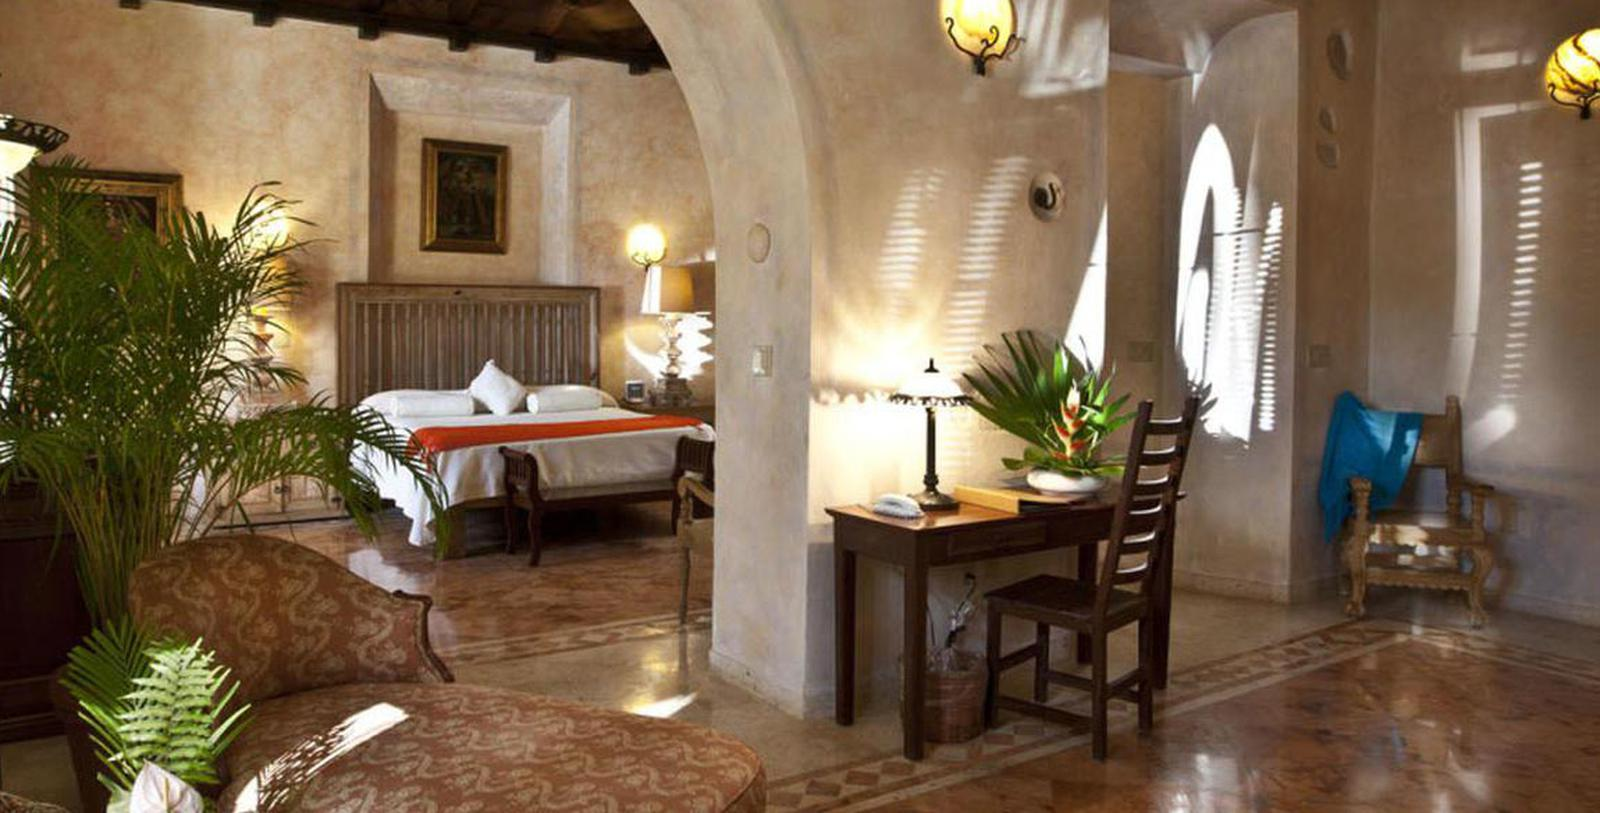 Image of Guestroom Interior, Hacienda Xcanatún, Merida, Mexico, 1789, Member of Historic Hotels Worldwide, Location Map